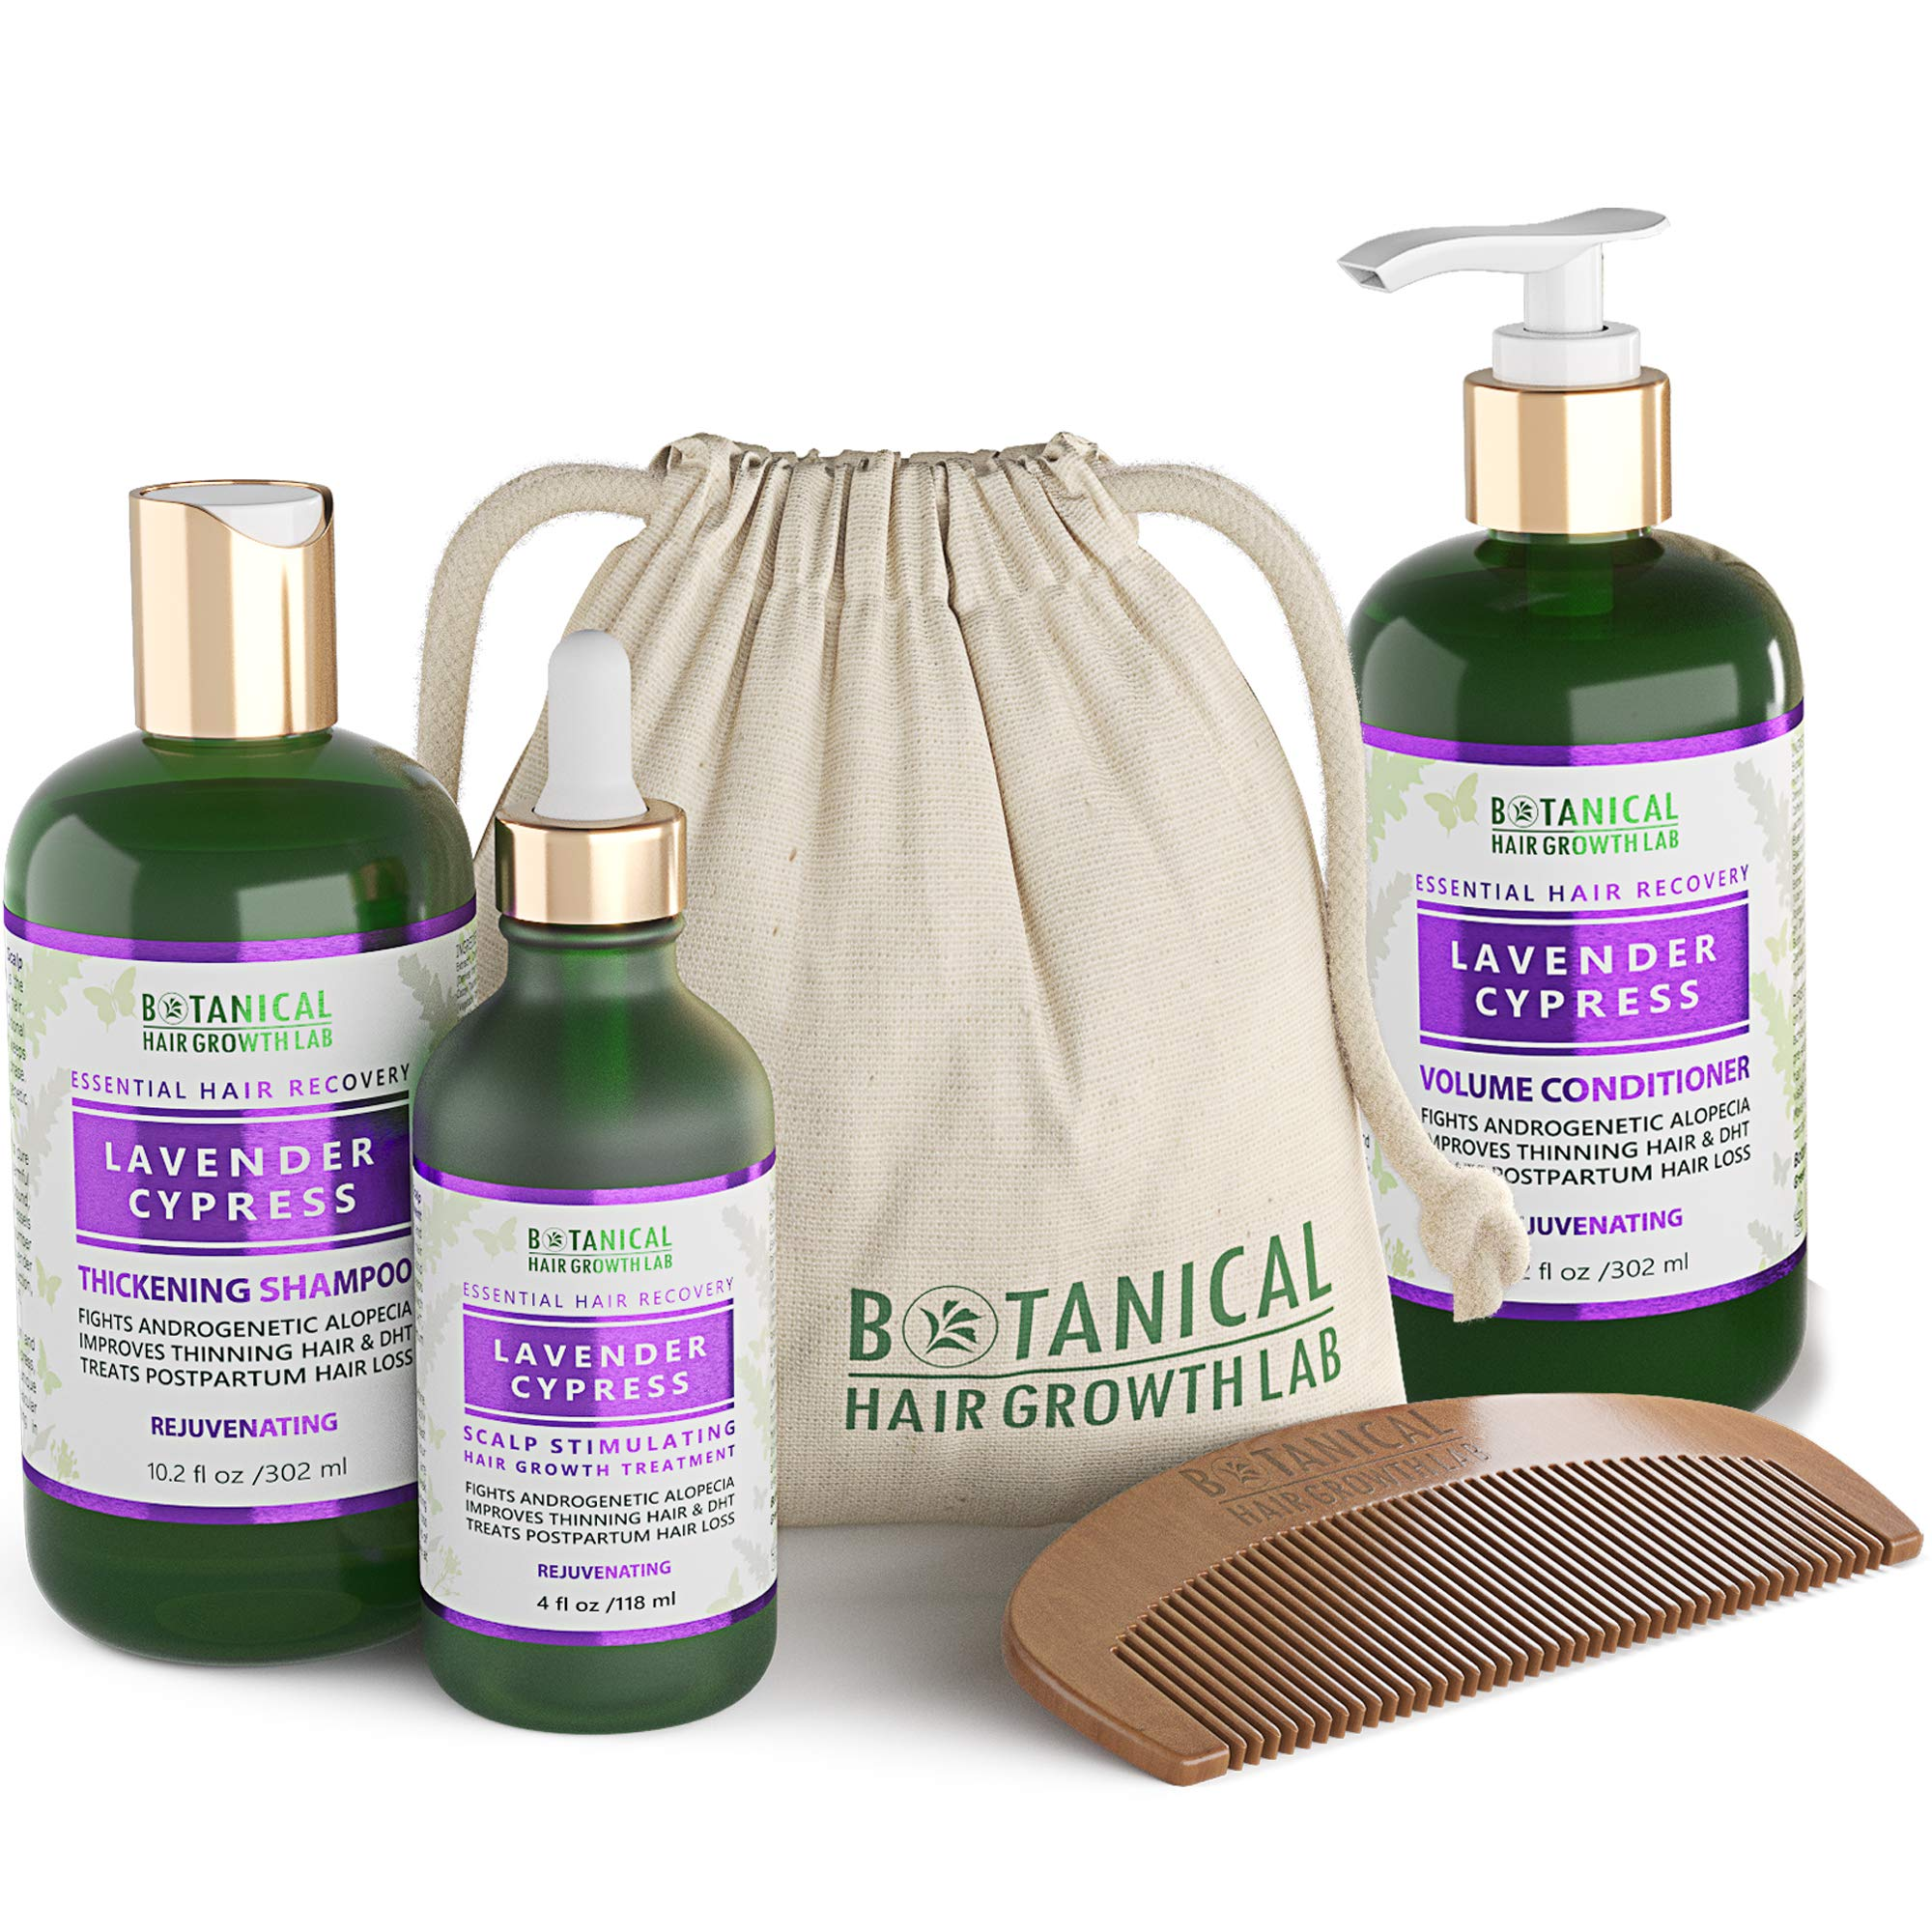 Anti Hair Loss Alopecia Postpartum DHT Blocker Scalp Treatment Shampoo and Conditioner 3 Pc Value Set Lavender - Cypress Hair Growth Botanical For Hair Thinning Prevention